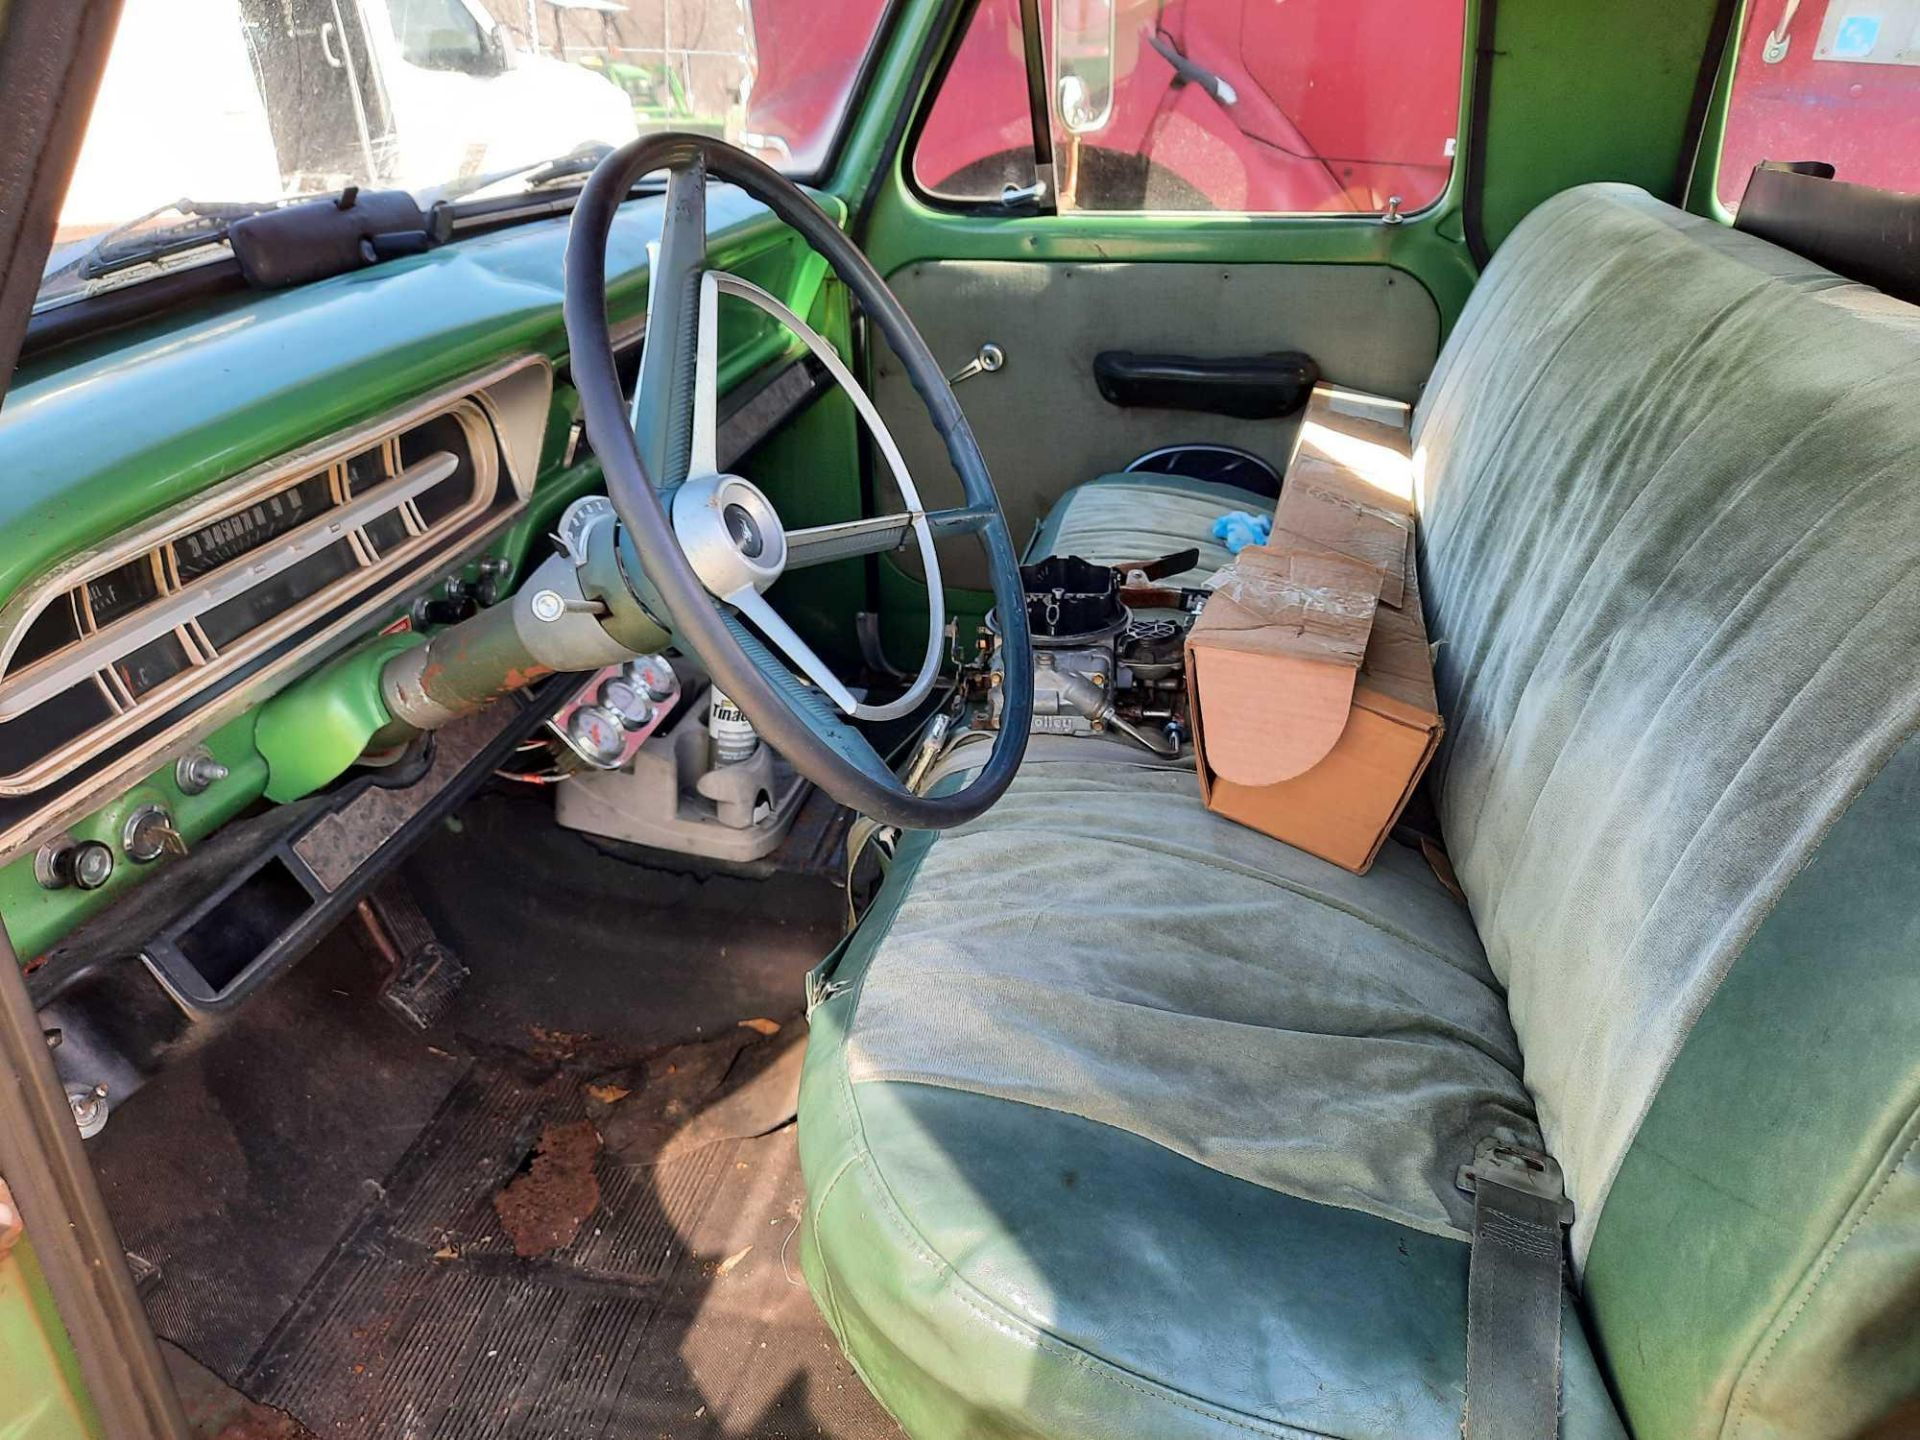 1972 FORD CREW CAB 350 PICK UP TRUCK (INOPERABLE) - Image 8 of 15